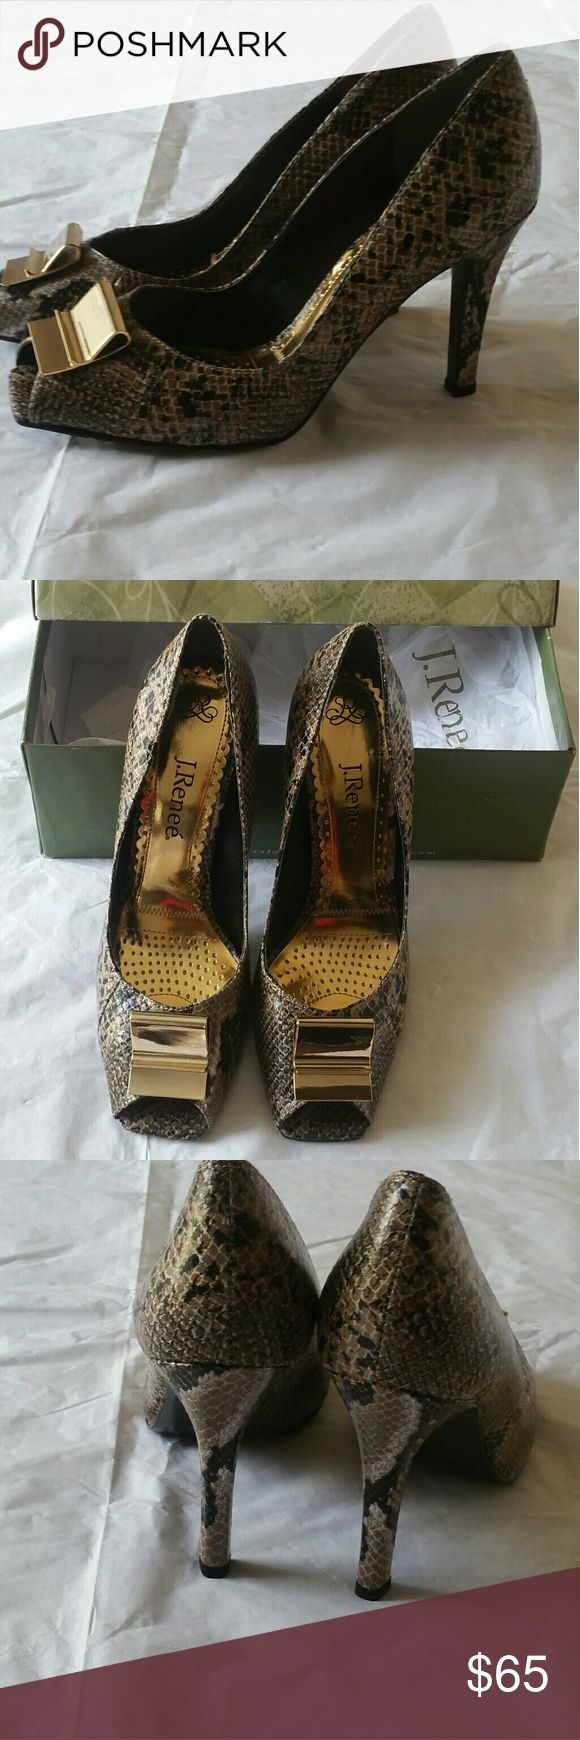 Women shoes J Renee blck and tan animal print  high heels, peep toe , with a gold colored front  buckle. J Renee Shoes Heels